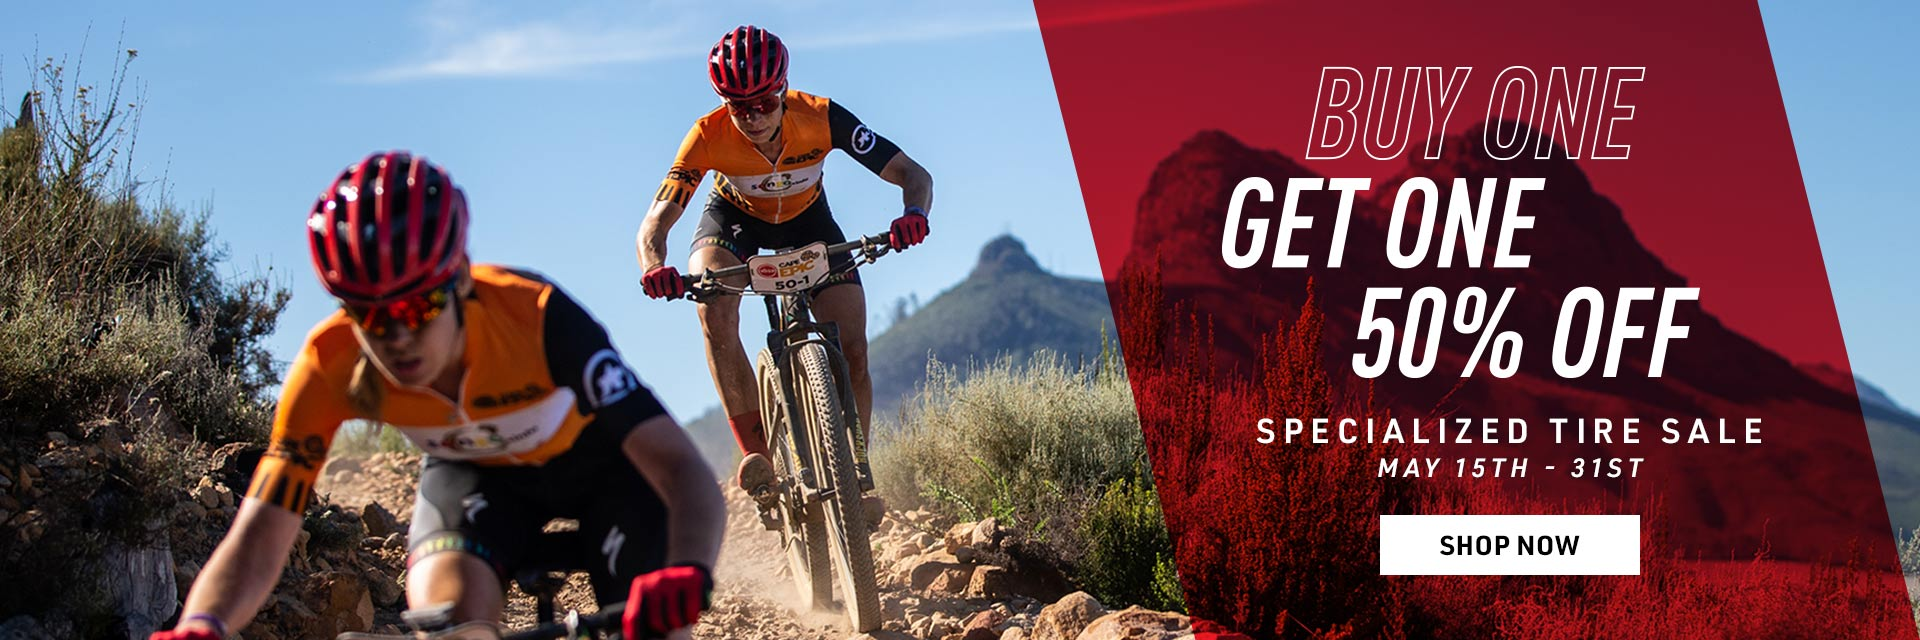 Specialized Tire Sale